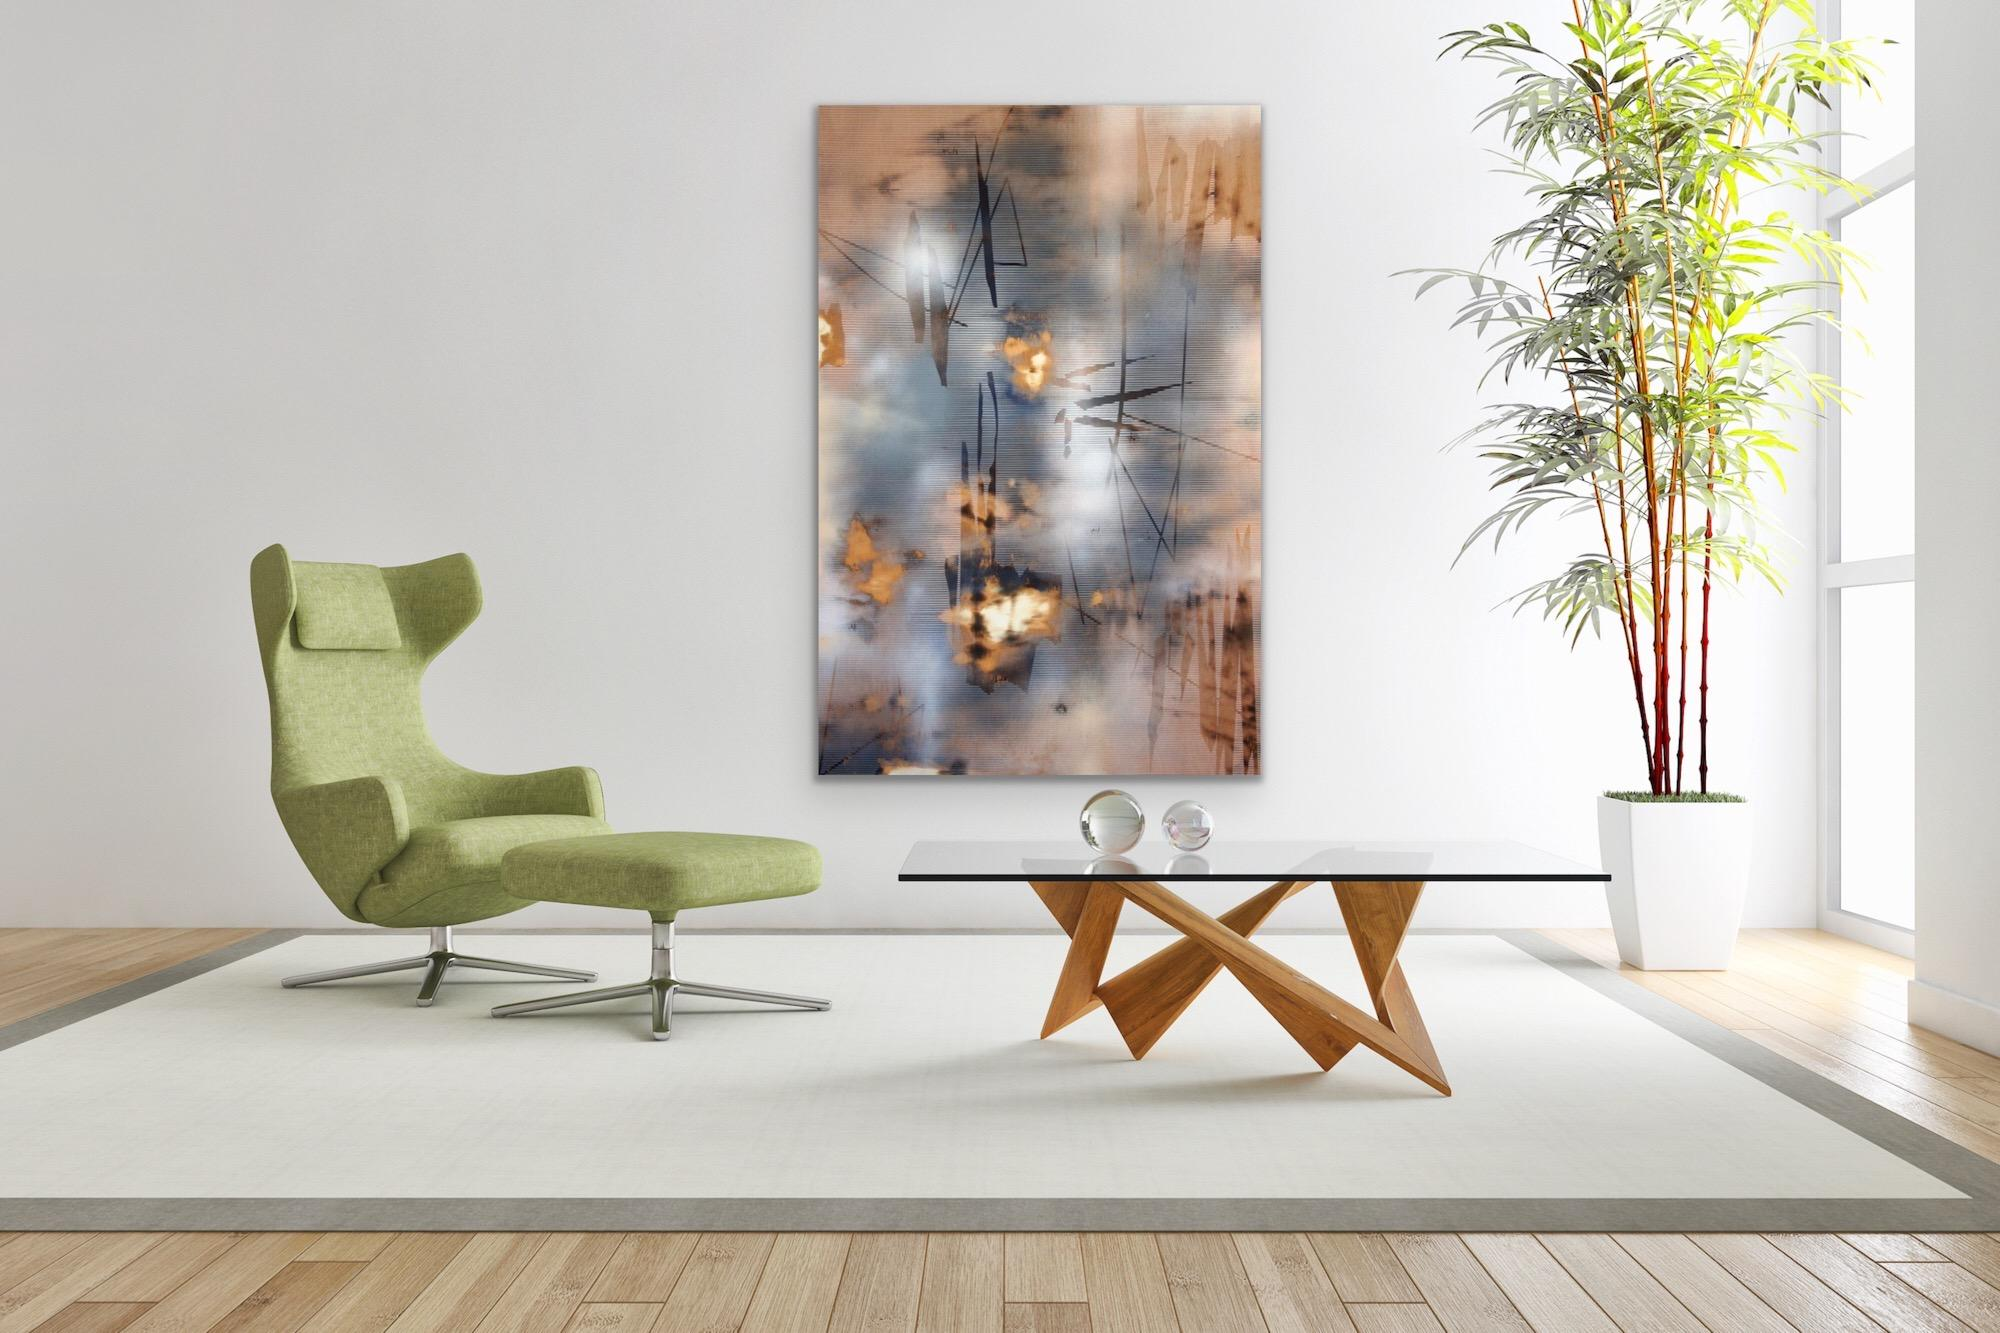 Turbulence 3 (grid painting abstract wood blue Sienna flesh tones contemporary)